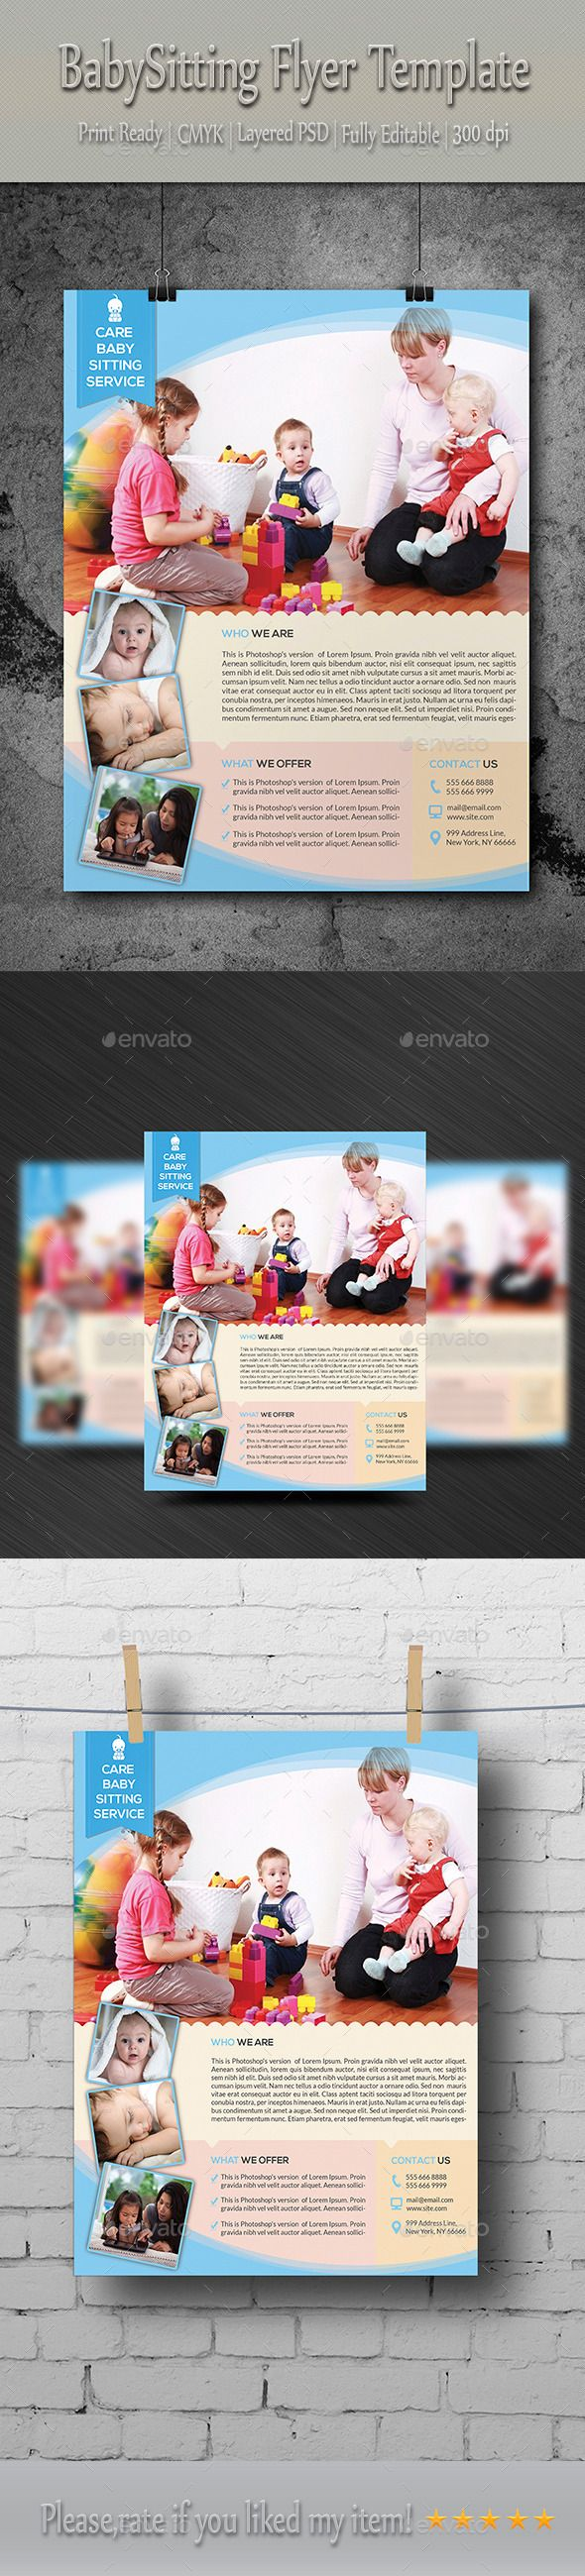 best images about flyer advertising ideas ad babysitting daycare flyer template